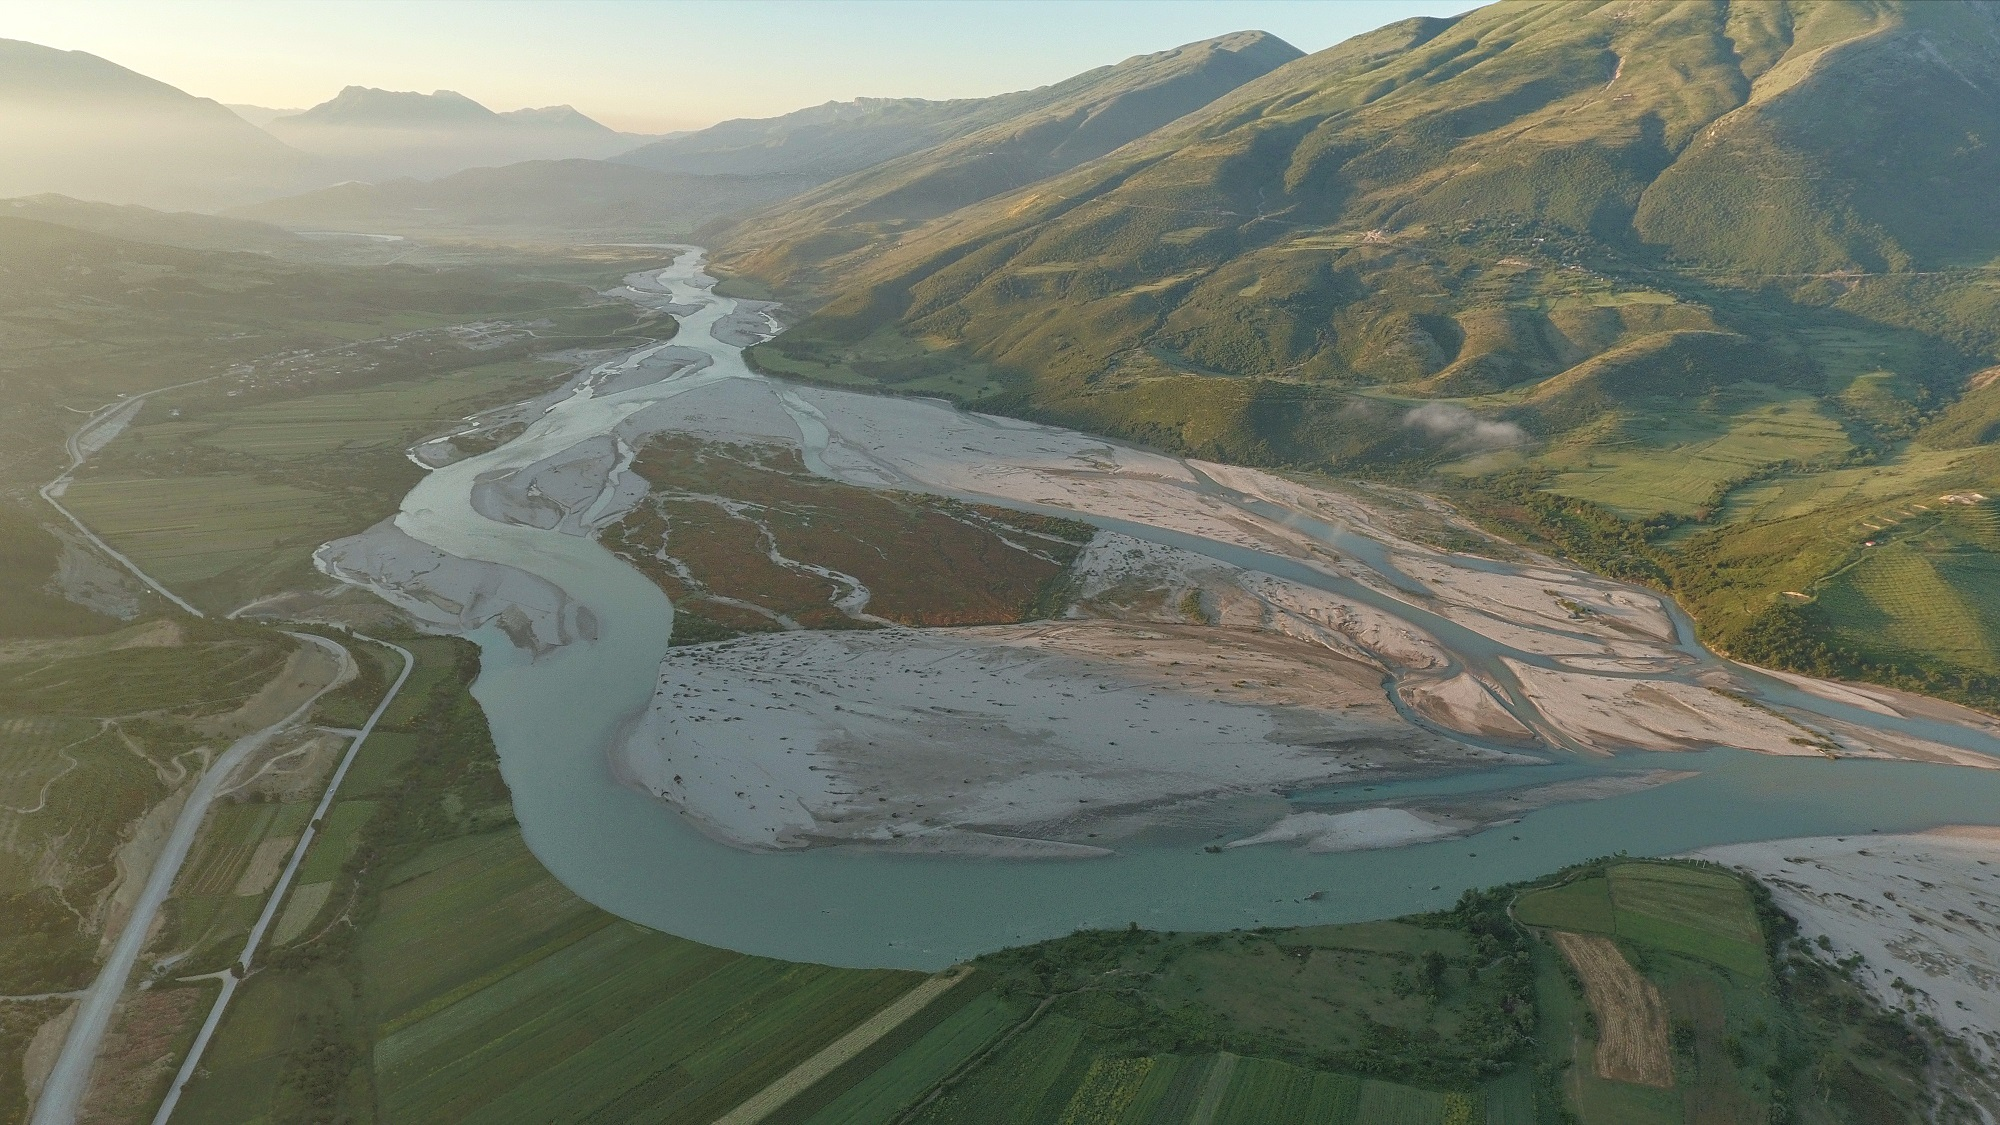 The Vjosa is one of the last free wild rivers of Europe outside Russia. The European Parliament demands her protection. © Gregor Subic